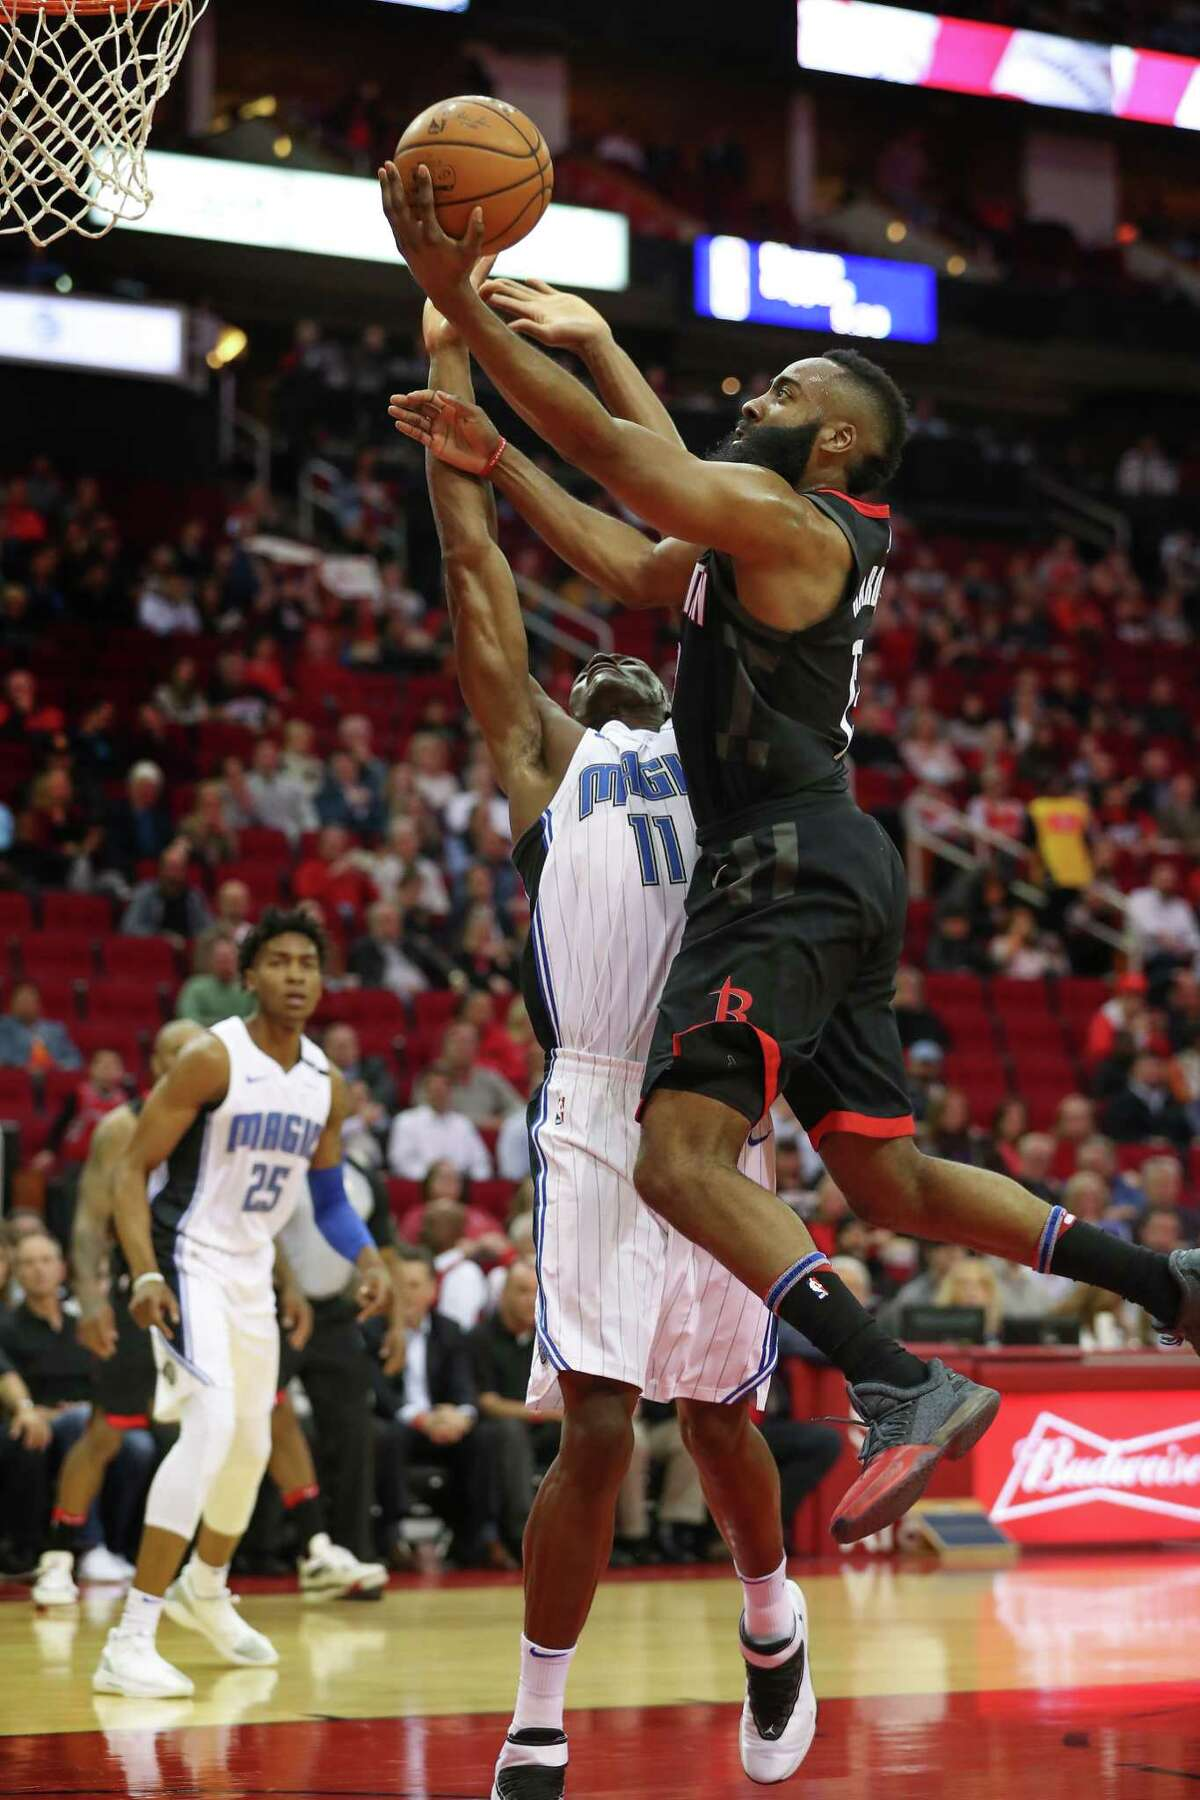 Houston Rockets guard James Harden (13)scores over Orlando Magic center Bismack Biyombo (11) in the 1st-quarter of an NBA basketball game at Toyota Center on Tuesday, Jan. 30, 2018, in Houston.